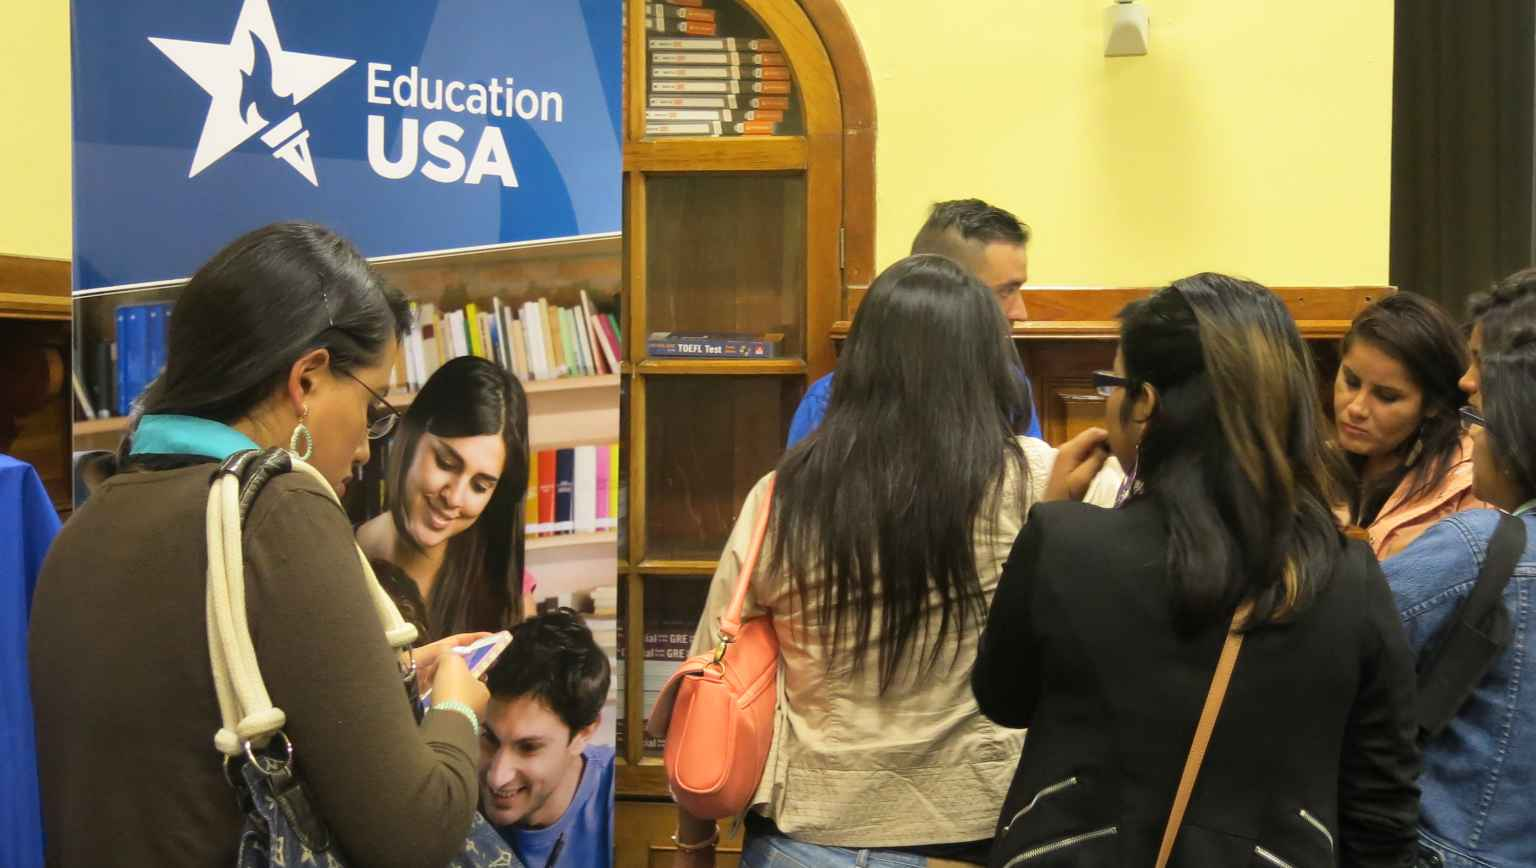 EducationUSA Presentation and Information session